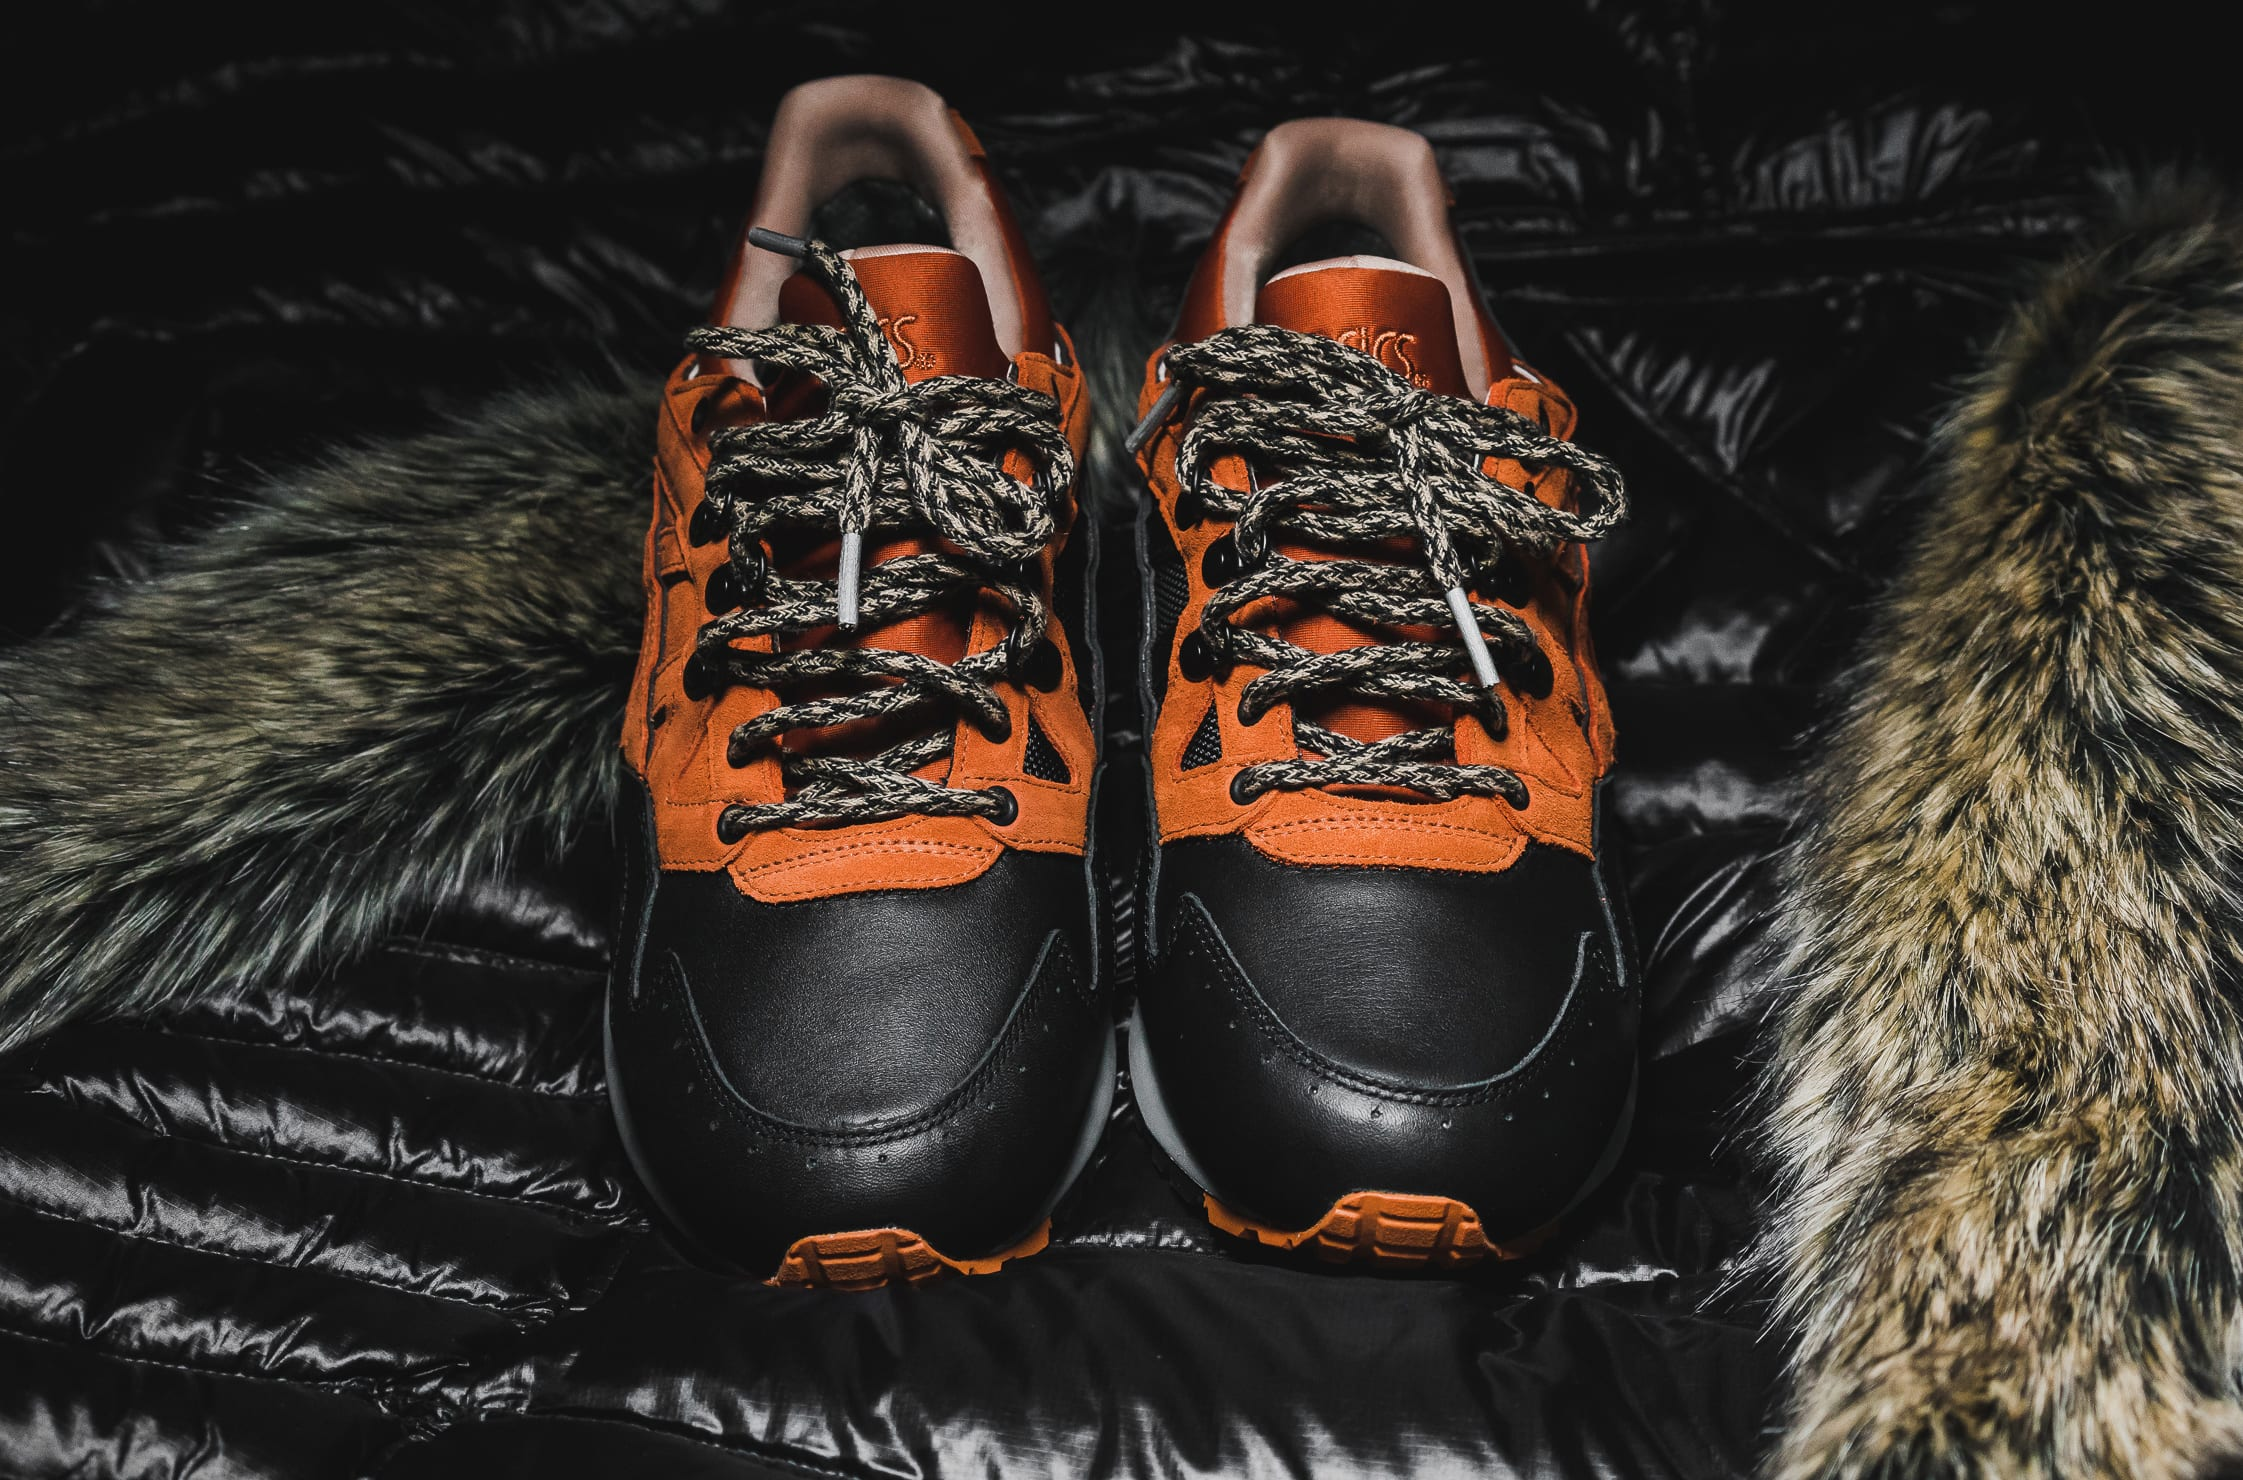 Seinfeld Asics Packer George Costanza Coat Sneakers Front